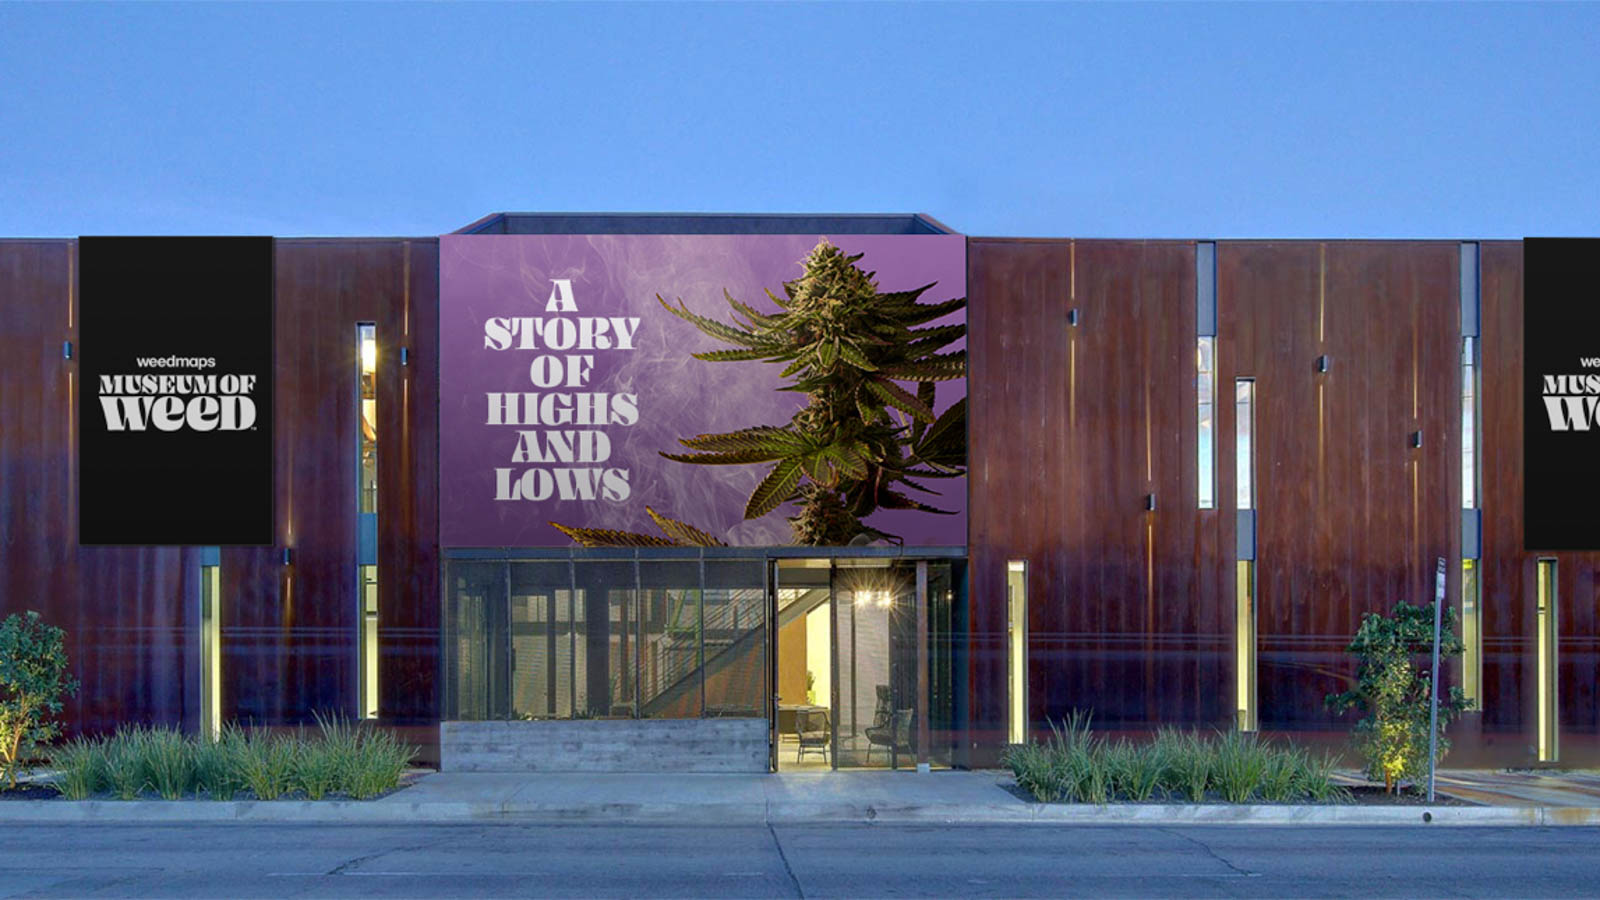 Weedmaps Museum of Weed